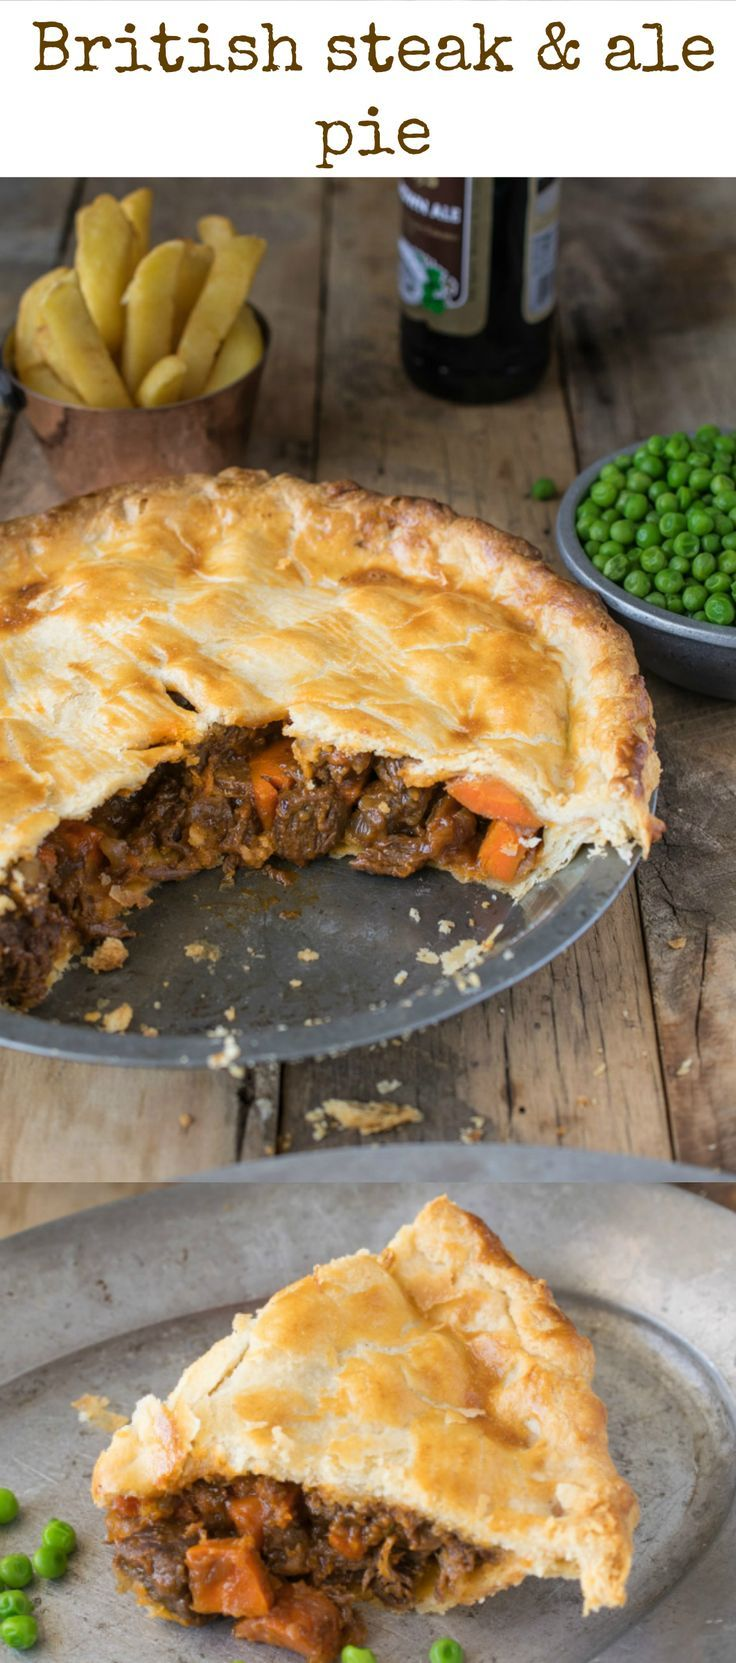 Steak and ale pie is a british classic found at most pubs around steak and ale pie is a british classic found at most pubs around england serve it with pea and chips for a perfectly comforting meal recipes to try forumfinder Images